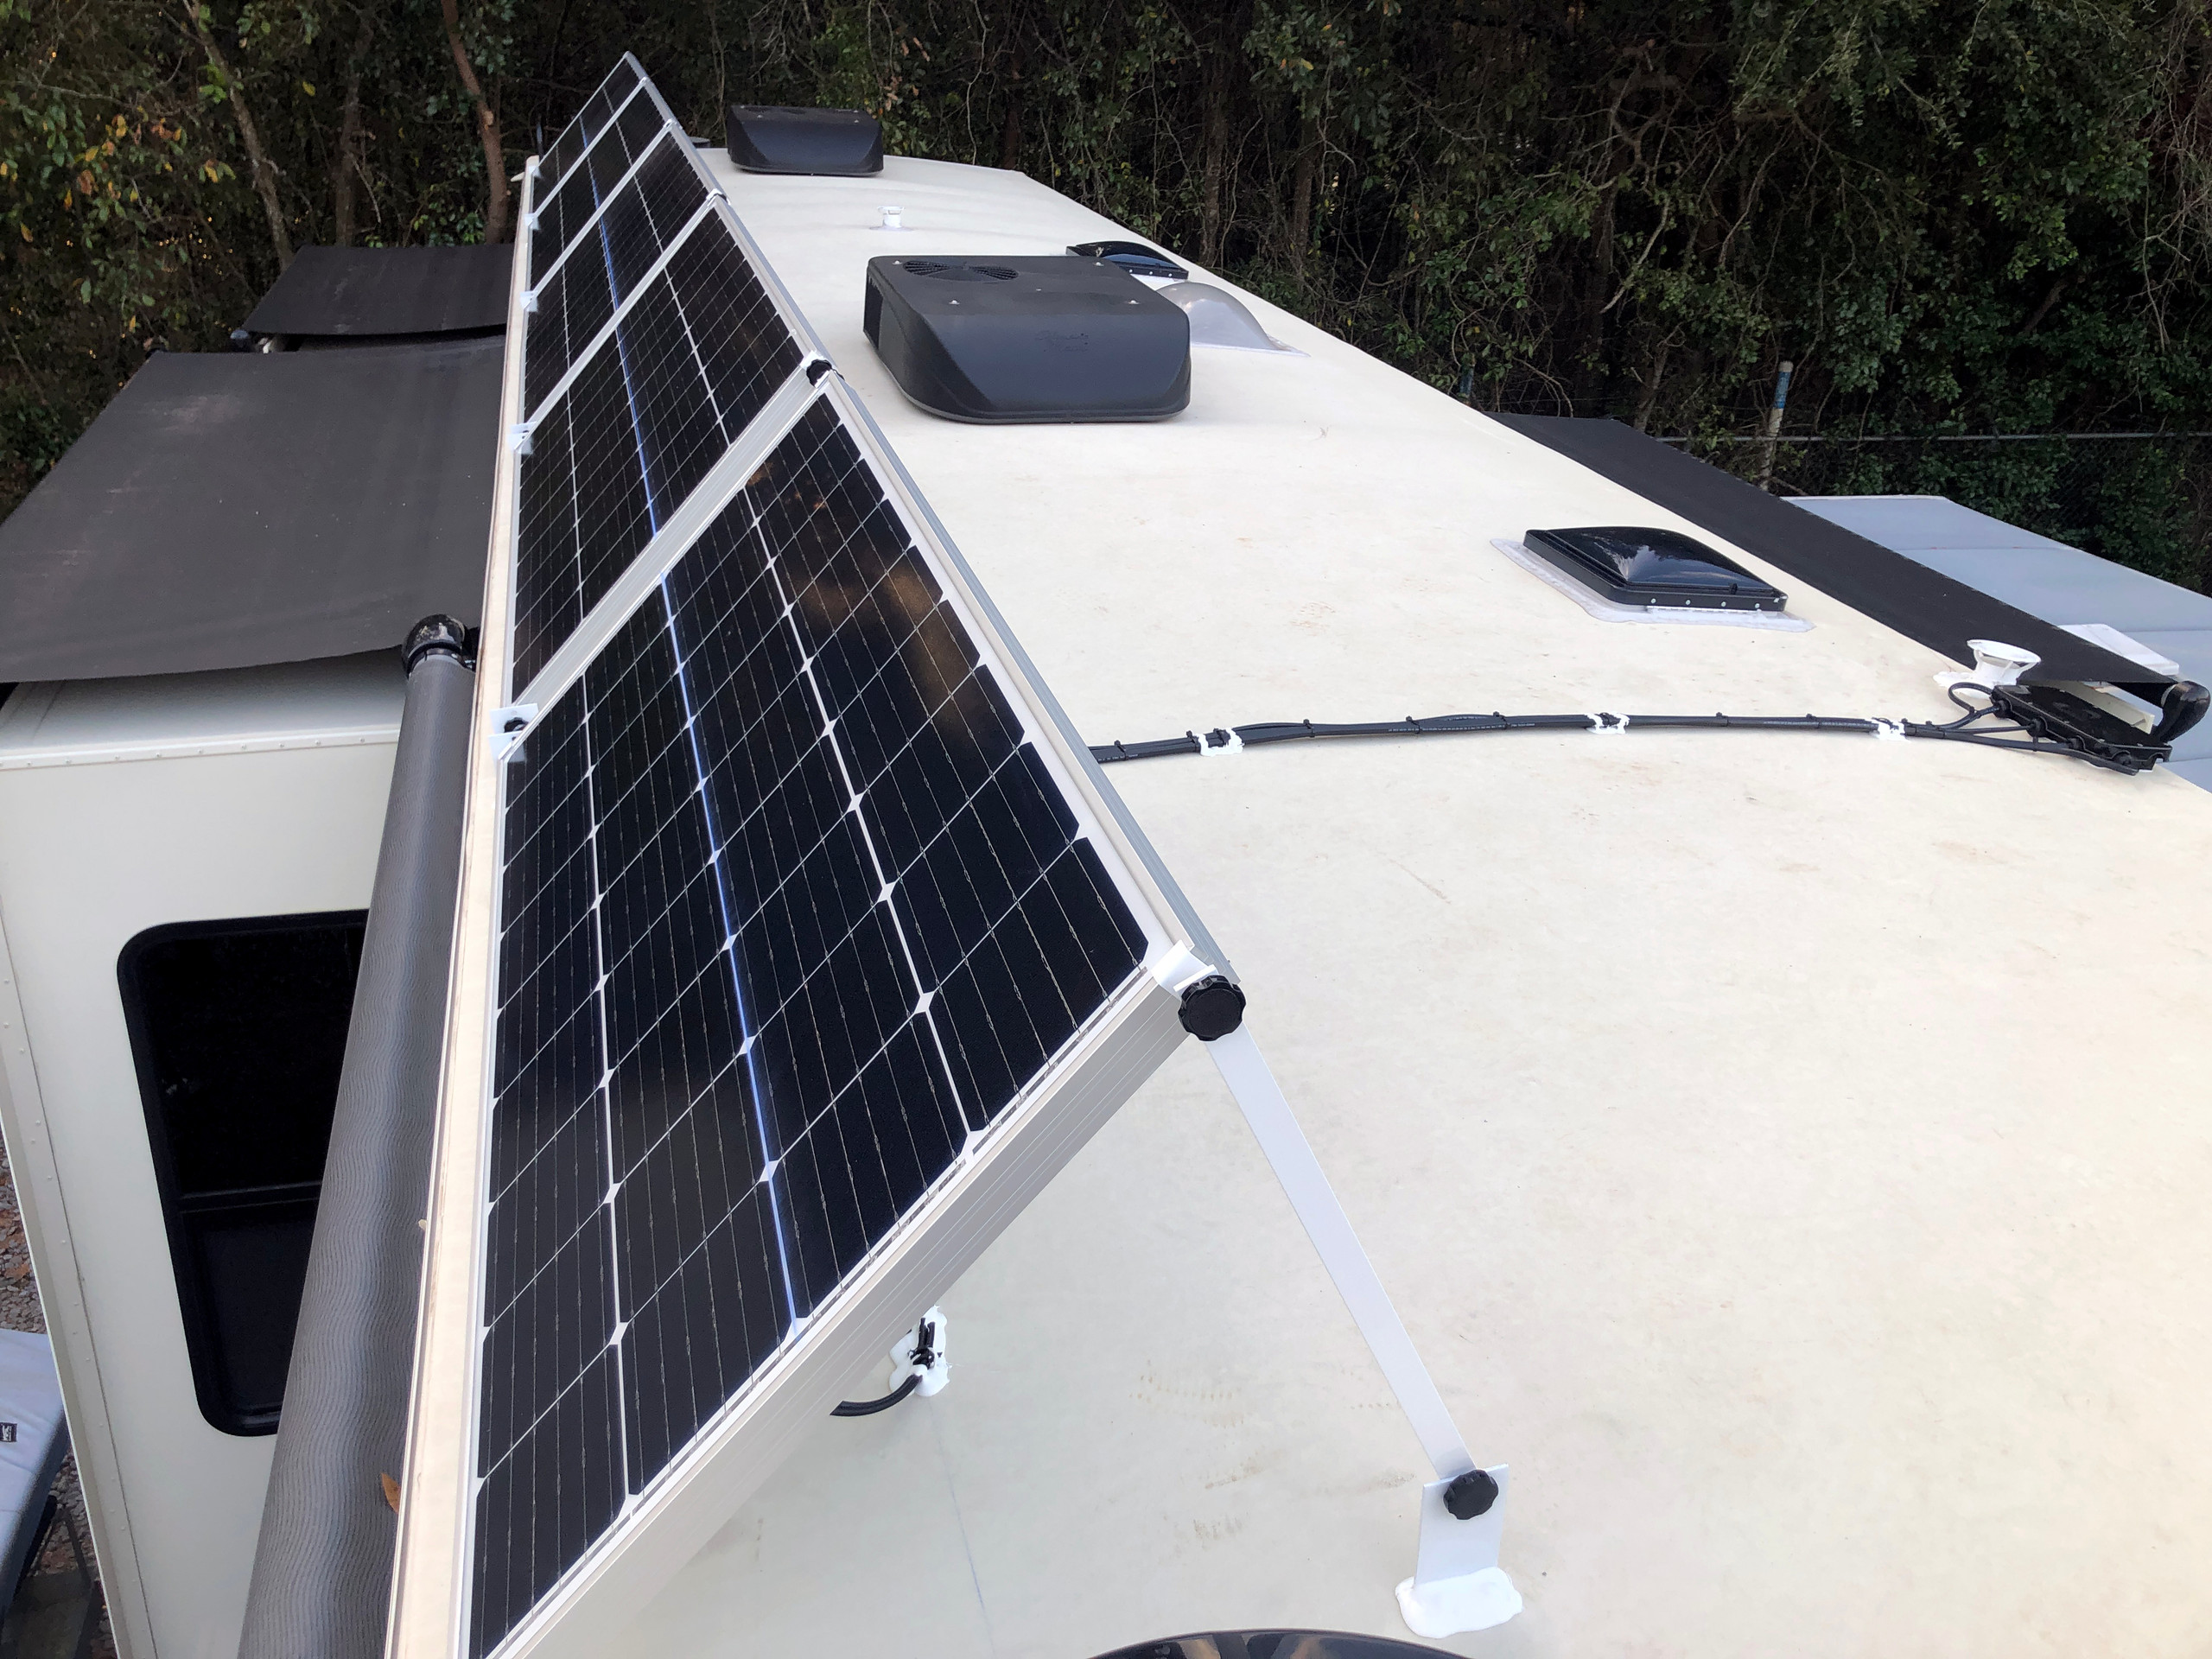 Tilting Solar Panel Array 5th Wheel RV